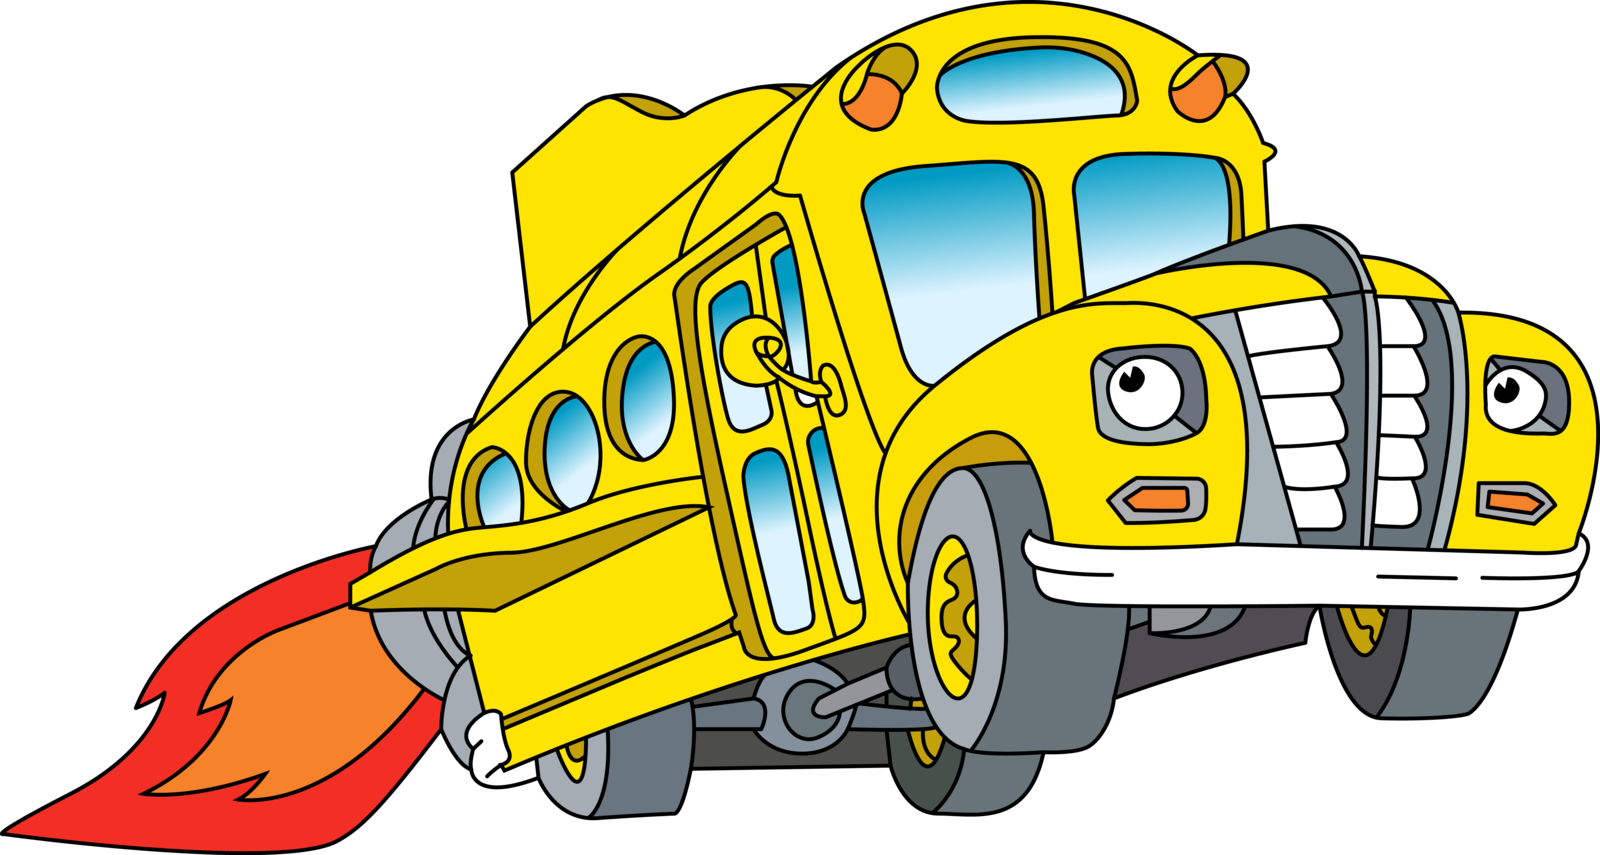 The Magic School Bus Character